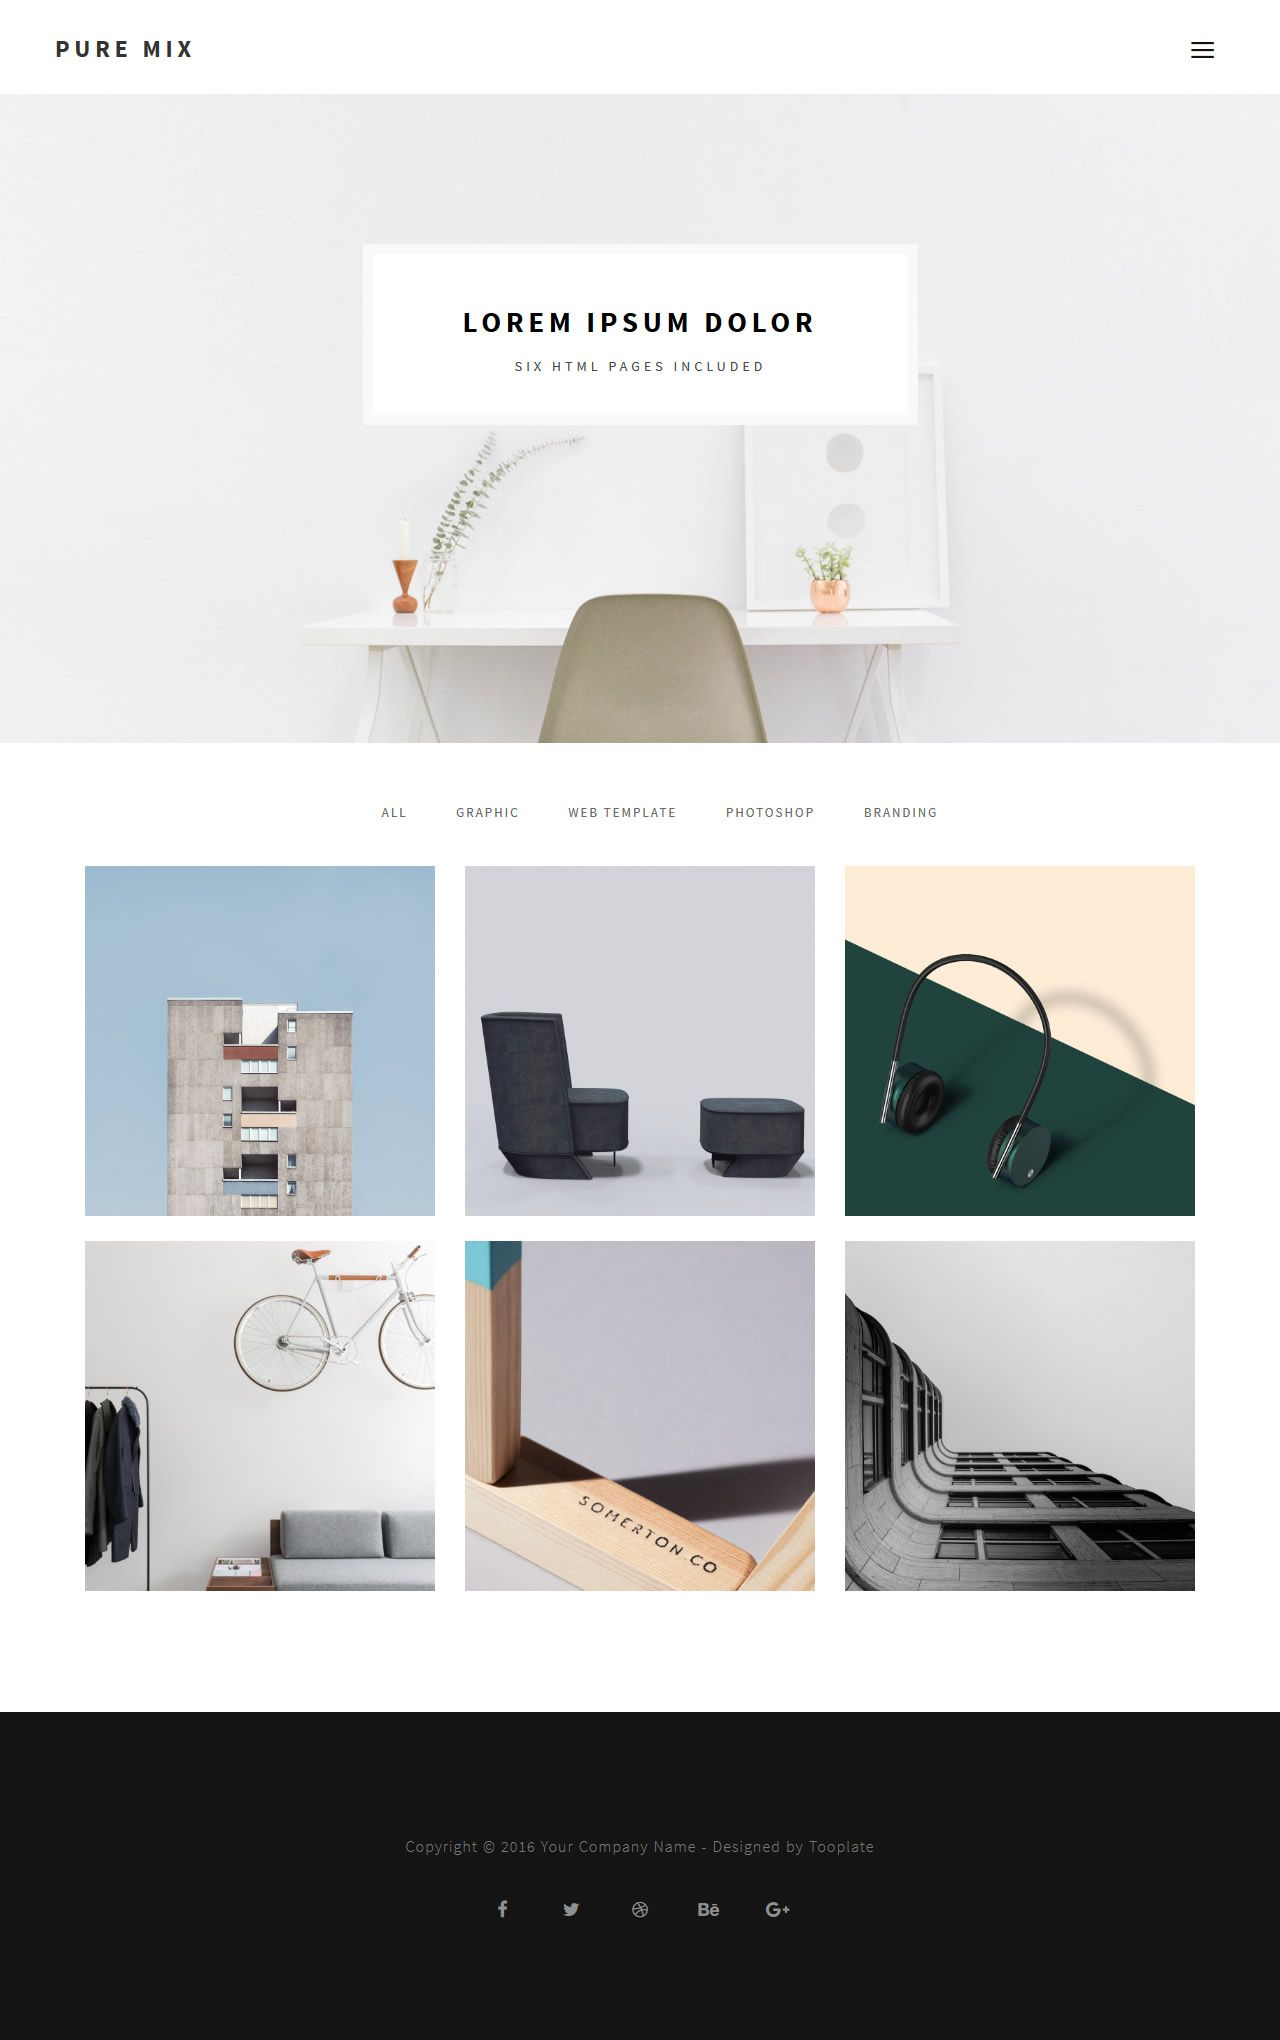 pure mix 6 pages html template - Free Html Pages